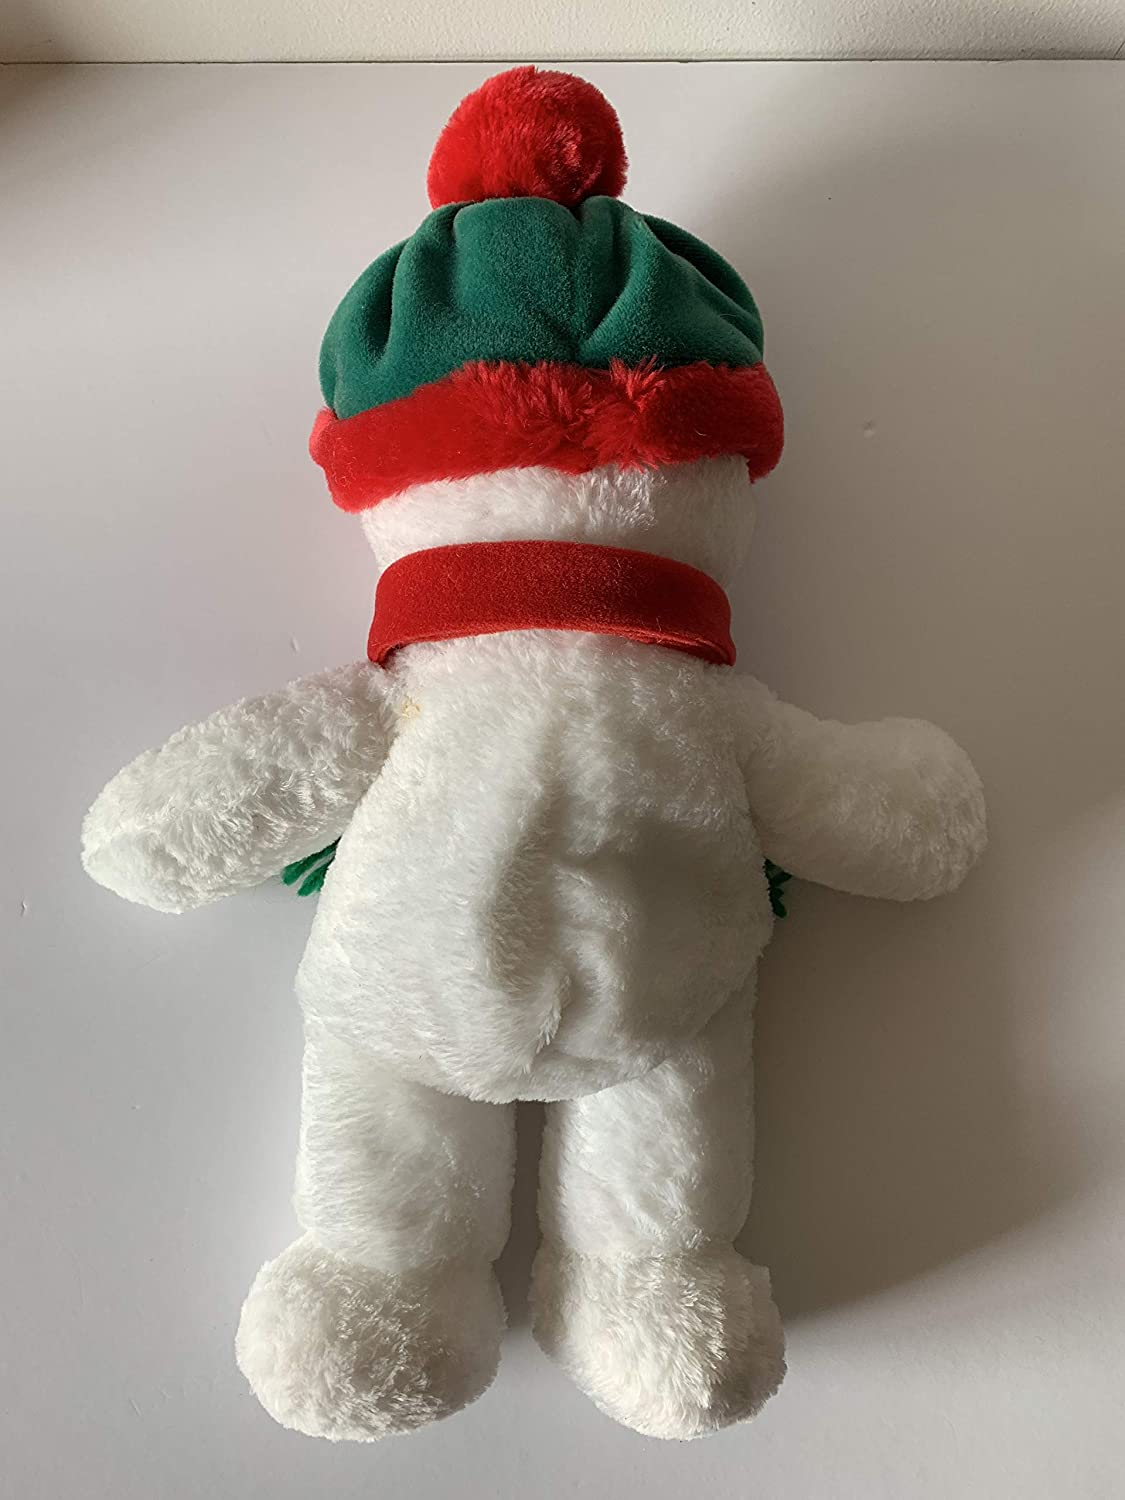 2 lbs sensory toy Weighted stuffed animal snowman washable